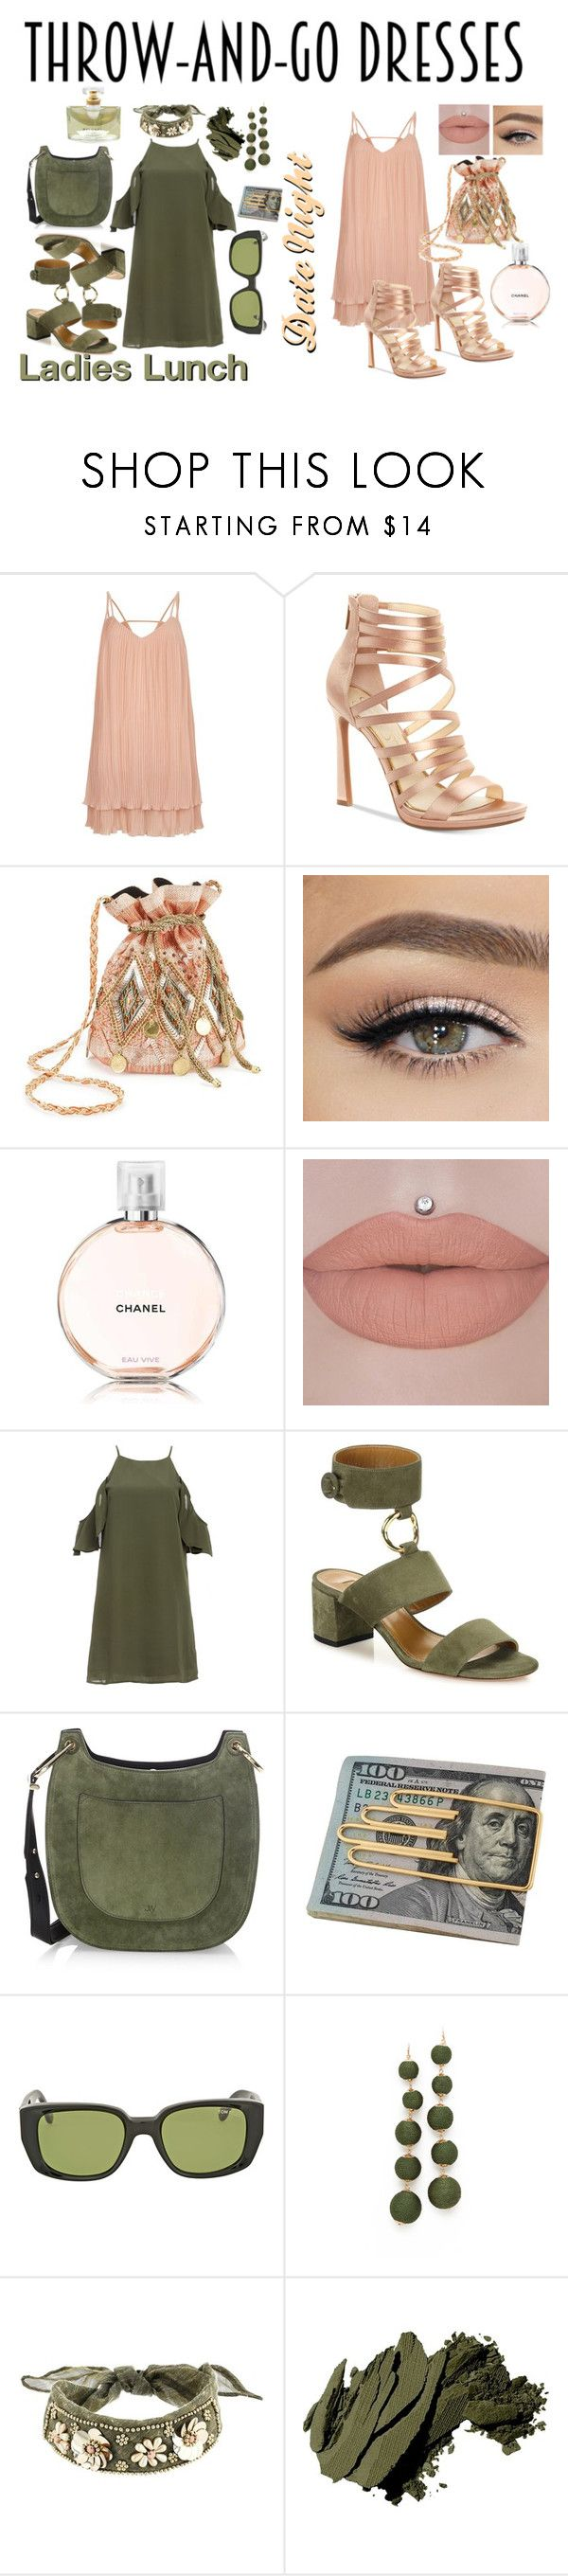 """""""Untitled #104"""" by jes4me530 on Polyvore featuring River Island, Jessica Simpson, Miss Selfridge, Chanel, Aquazzura, Jason Wu, Cartier, Tom Ford, Shashi and Betsey Johnson"""